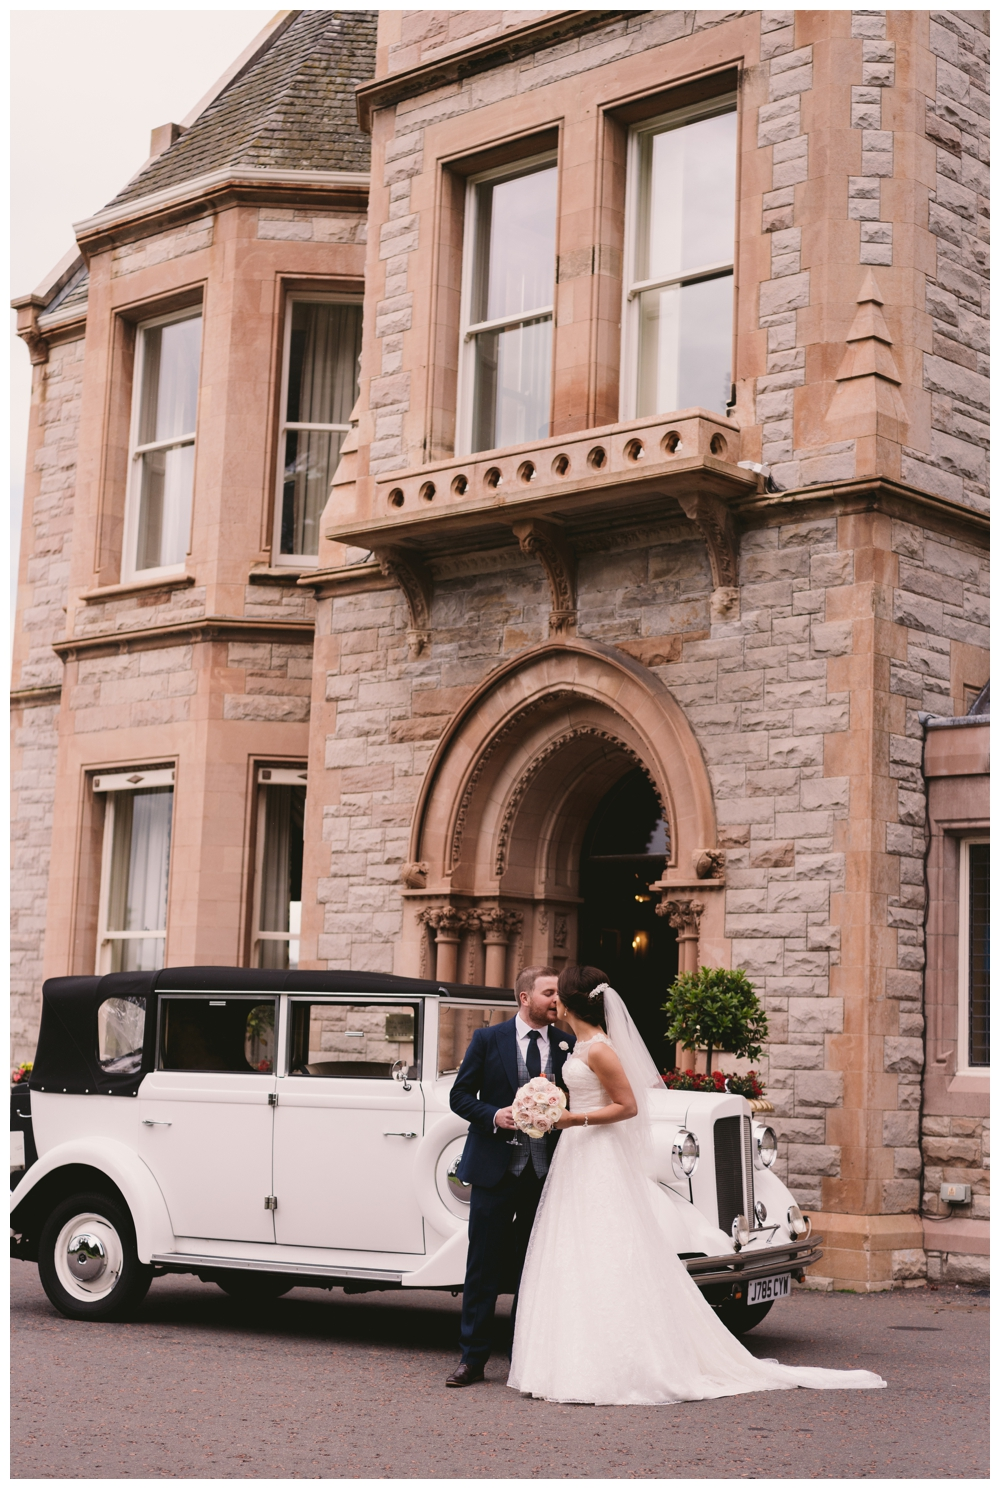 wedding_photographer_northern_ireland_culloden_0047.jpg